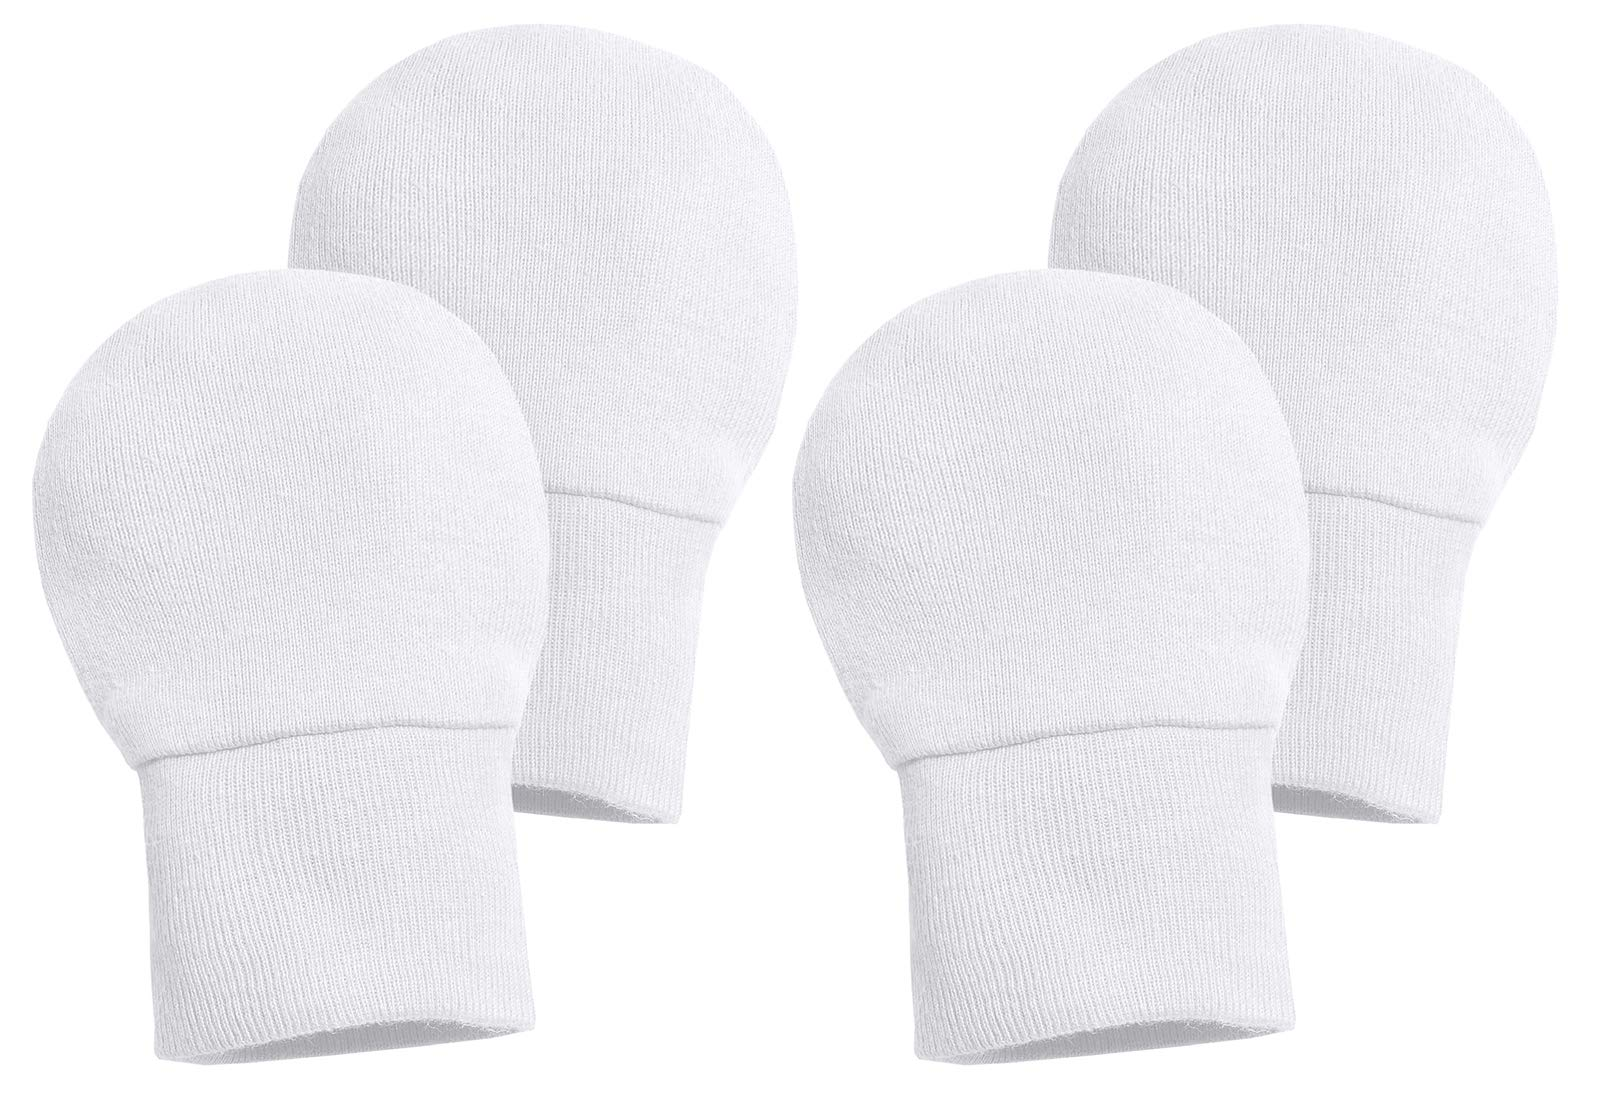 City Threads Newborn Cotton Gloves - No Scratch Mittens Safe Baby Boys Girls Teething Chemical Free, White/White, 0/3M by City Threads